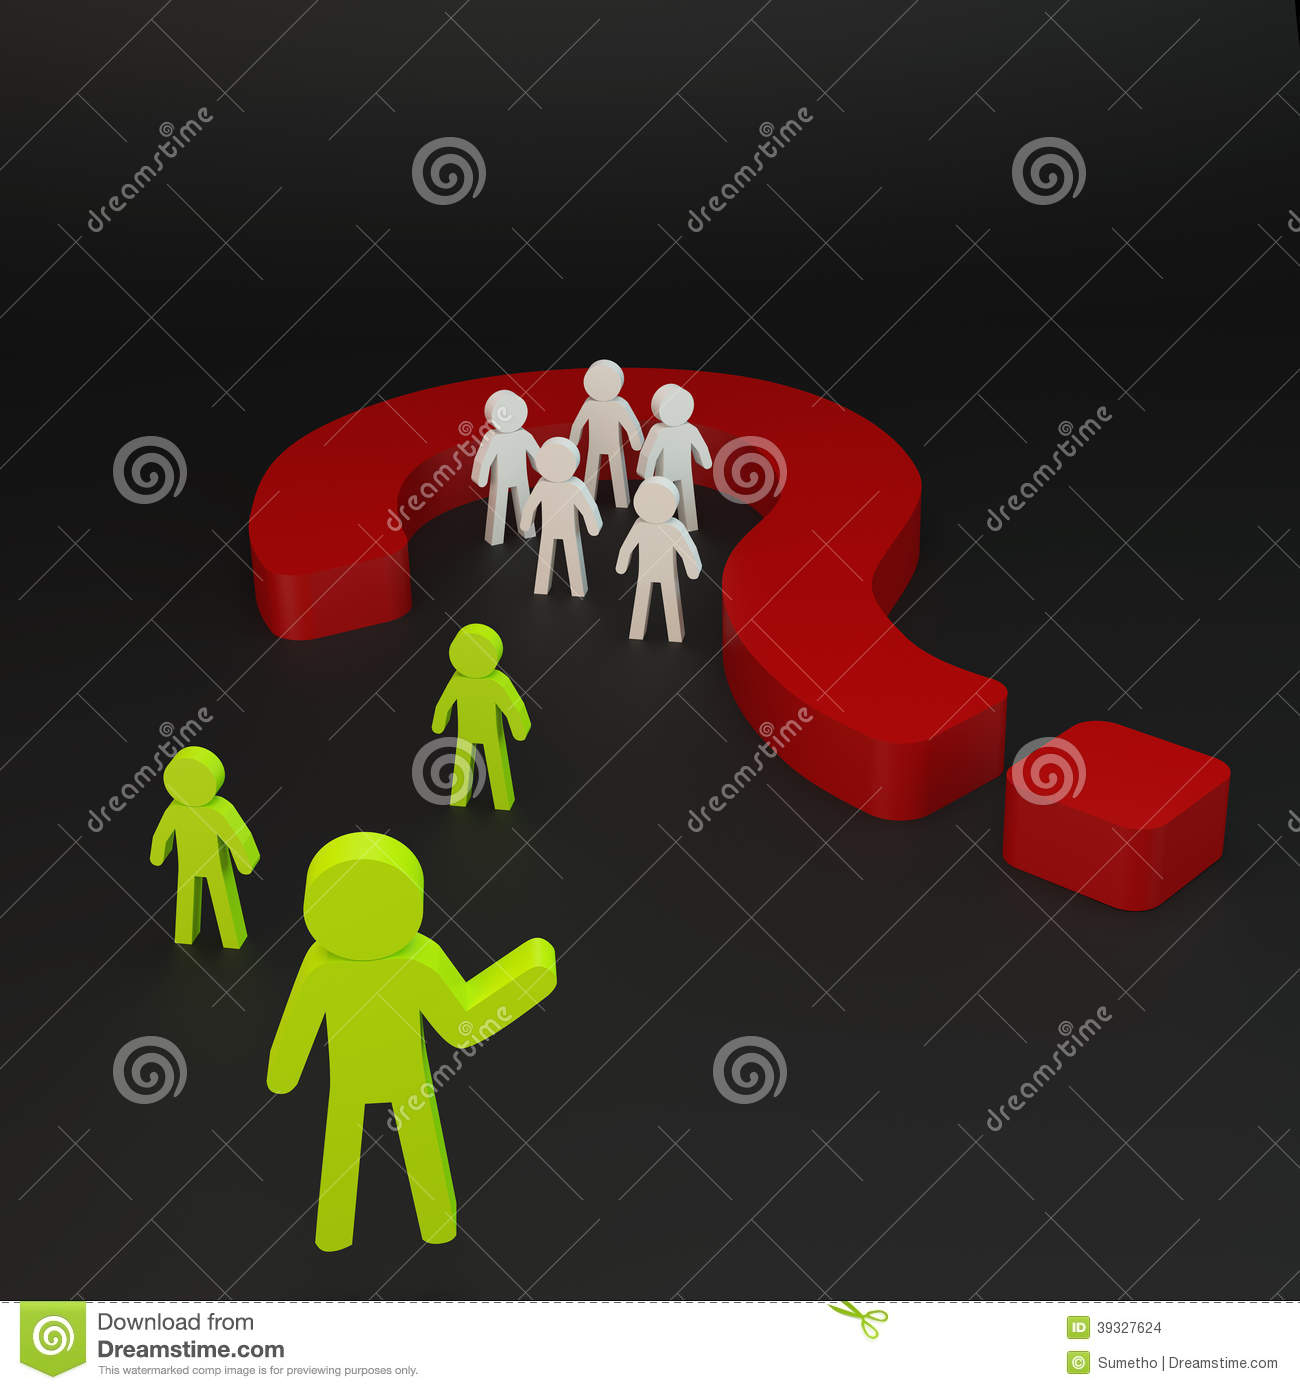 Green person and Group person in red question mark on black background    Question Mark Person Green